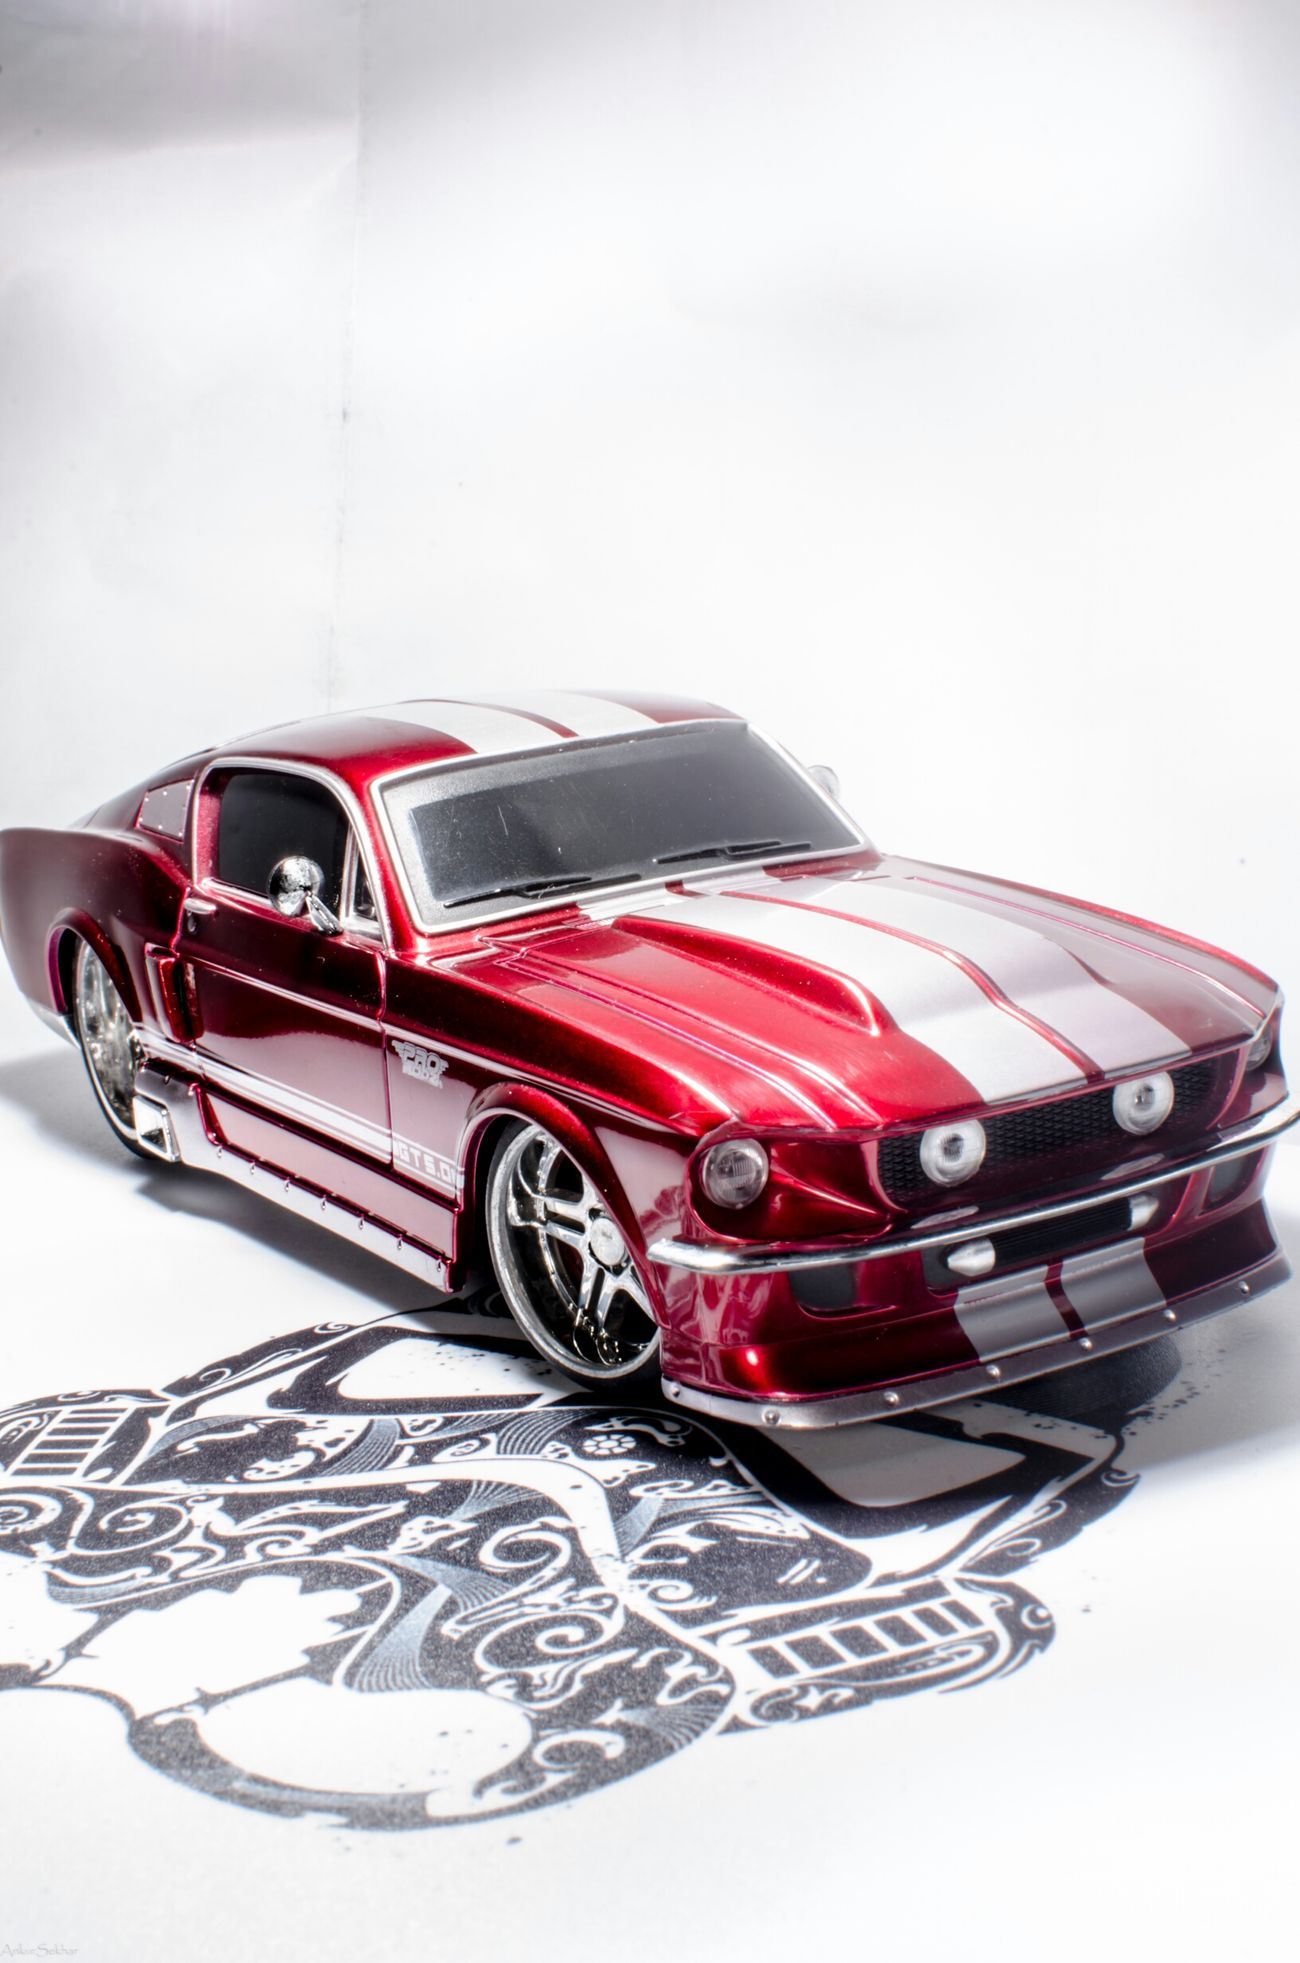 Toy Car Stuckathome 67mustang Ford Mustang Nikon D5100